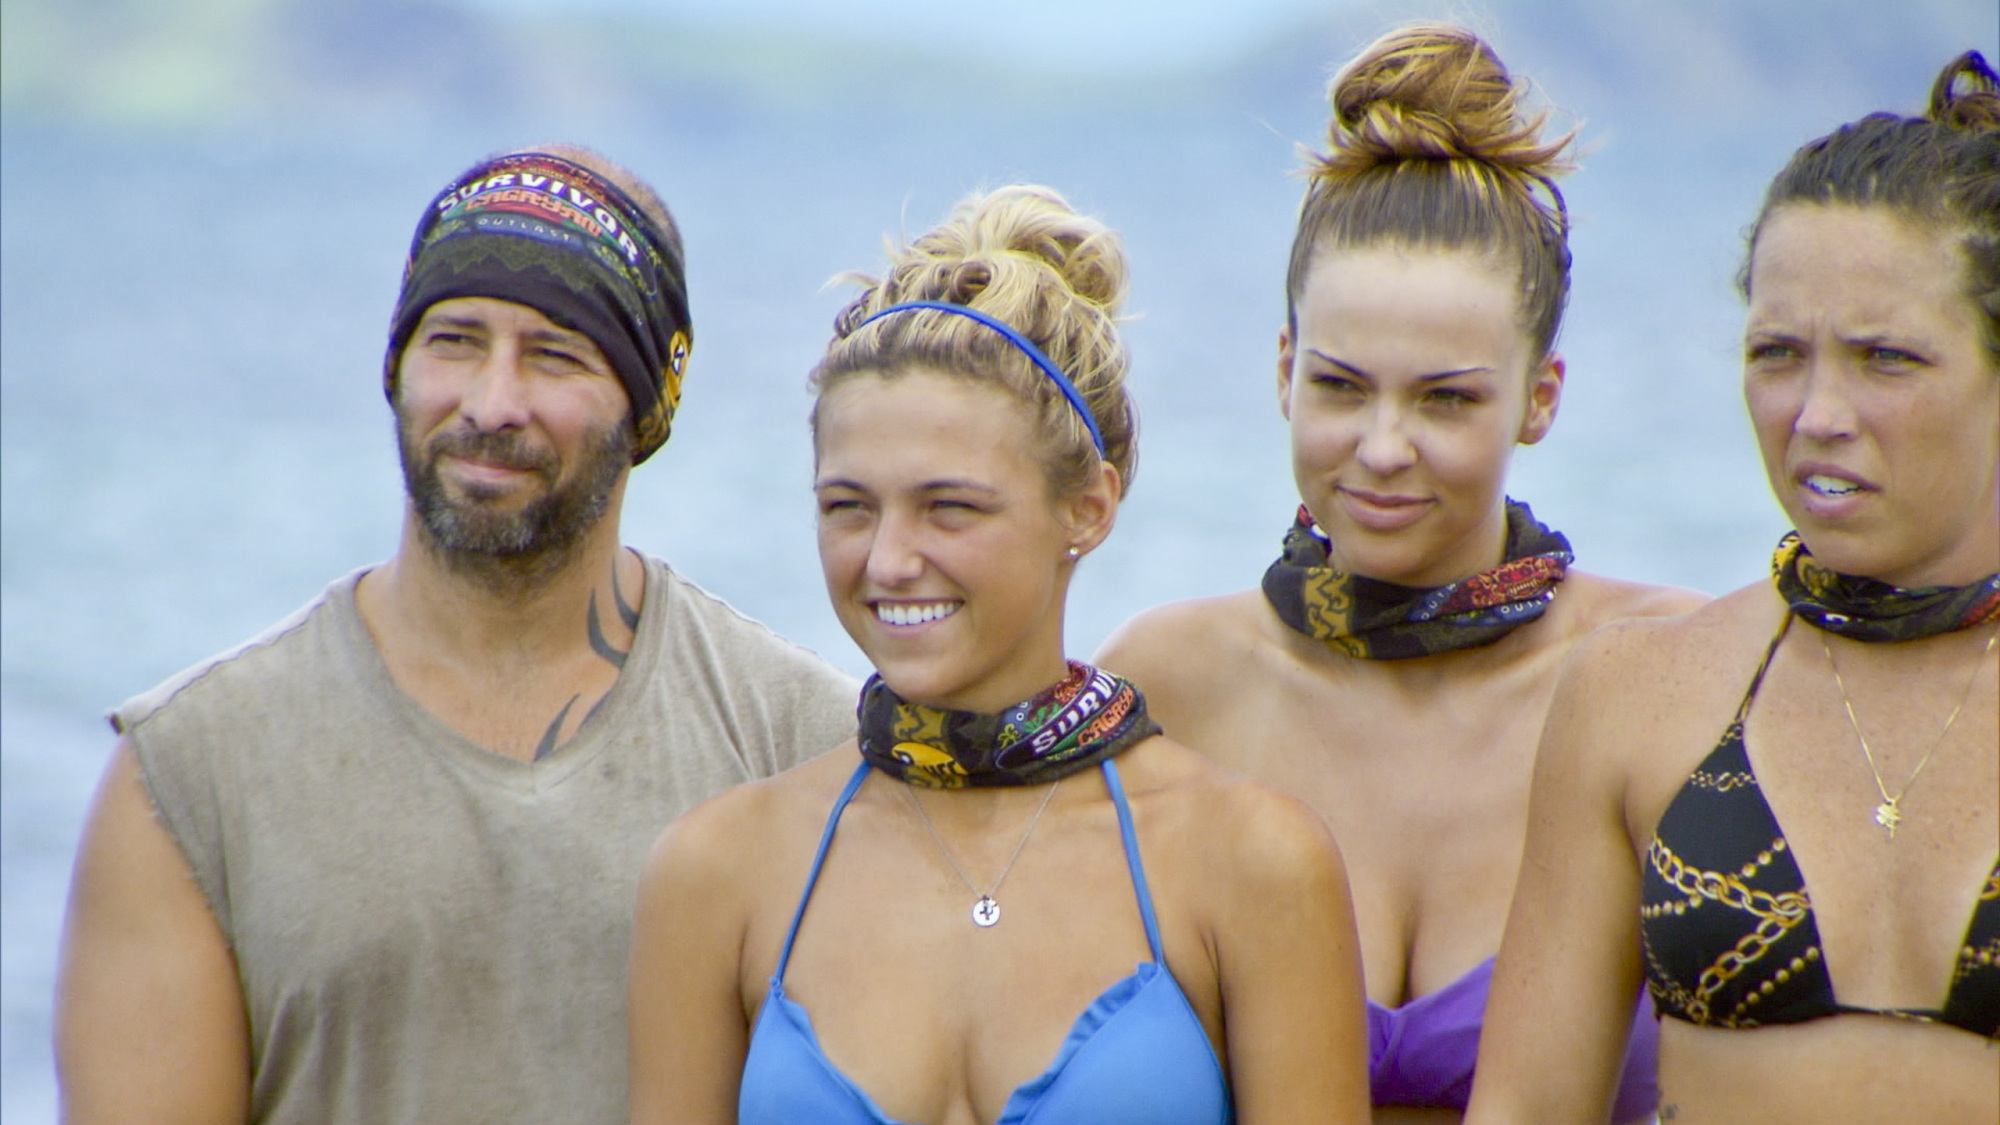 Tony, Jefra, Morgan and Sarah in Season 28 Episode 6